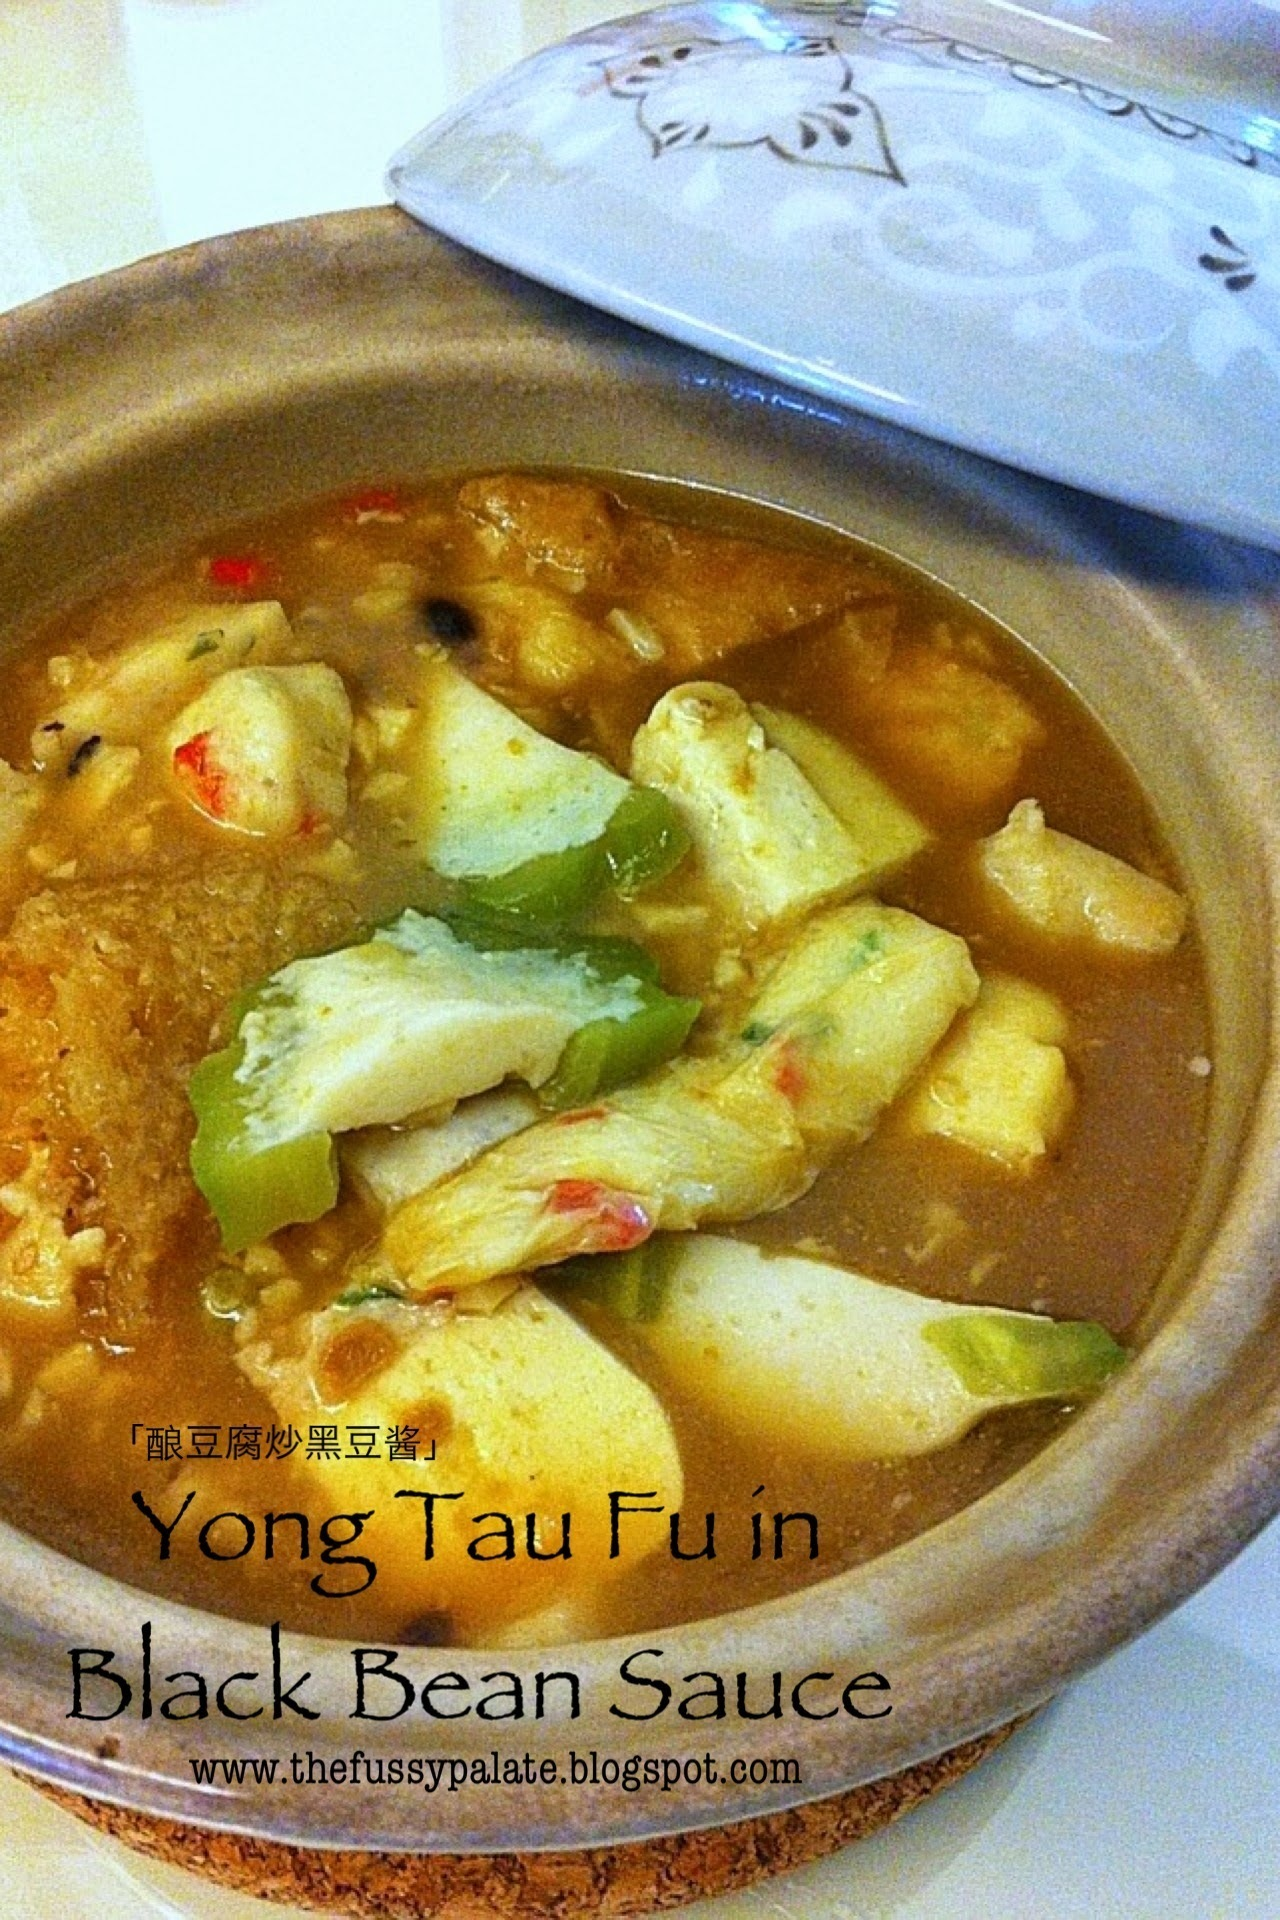 Yong Tau Fu in Black Bean Sauce